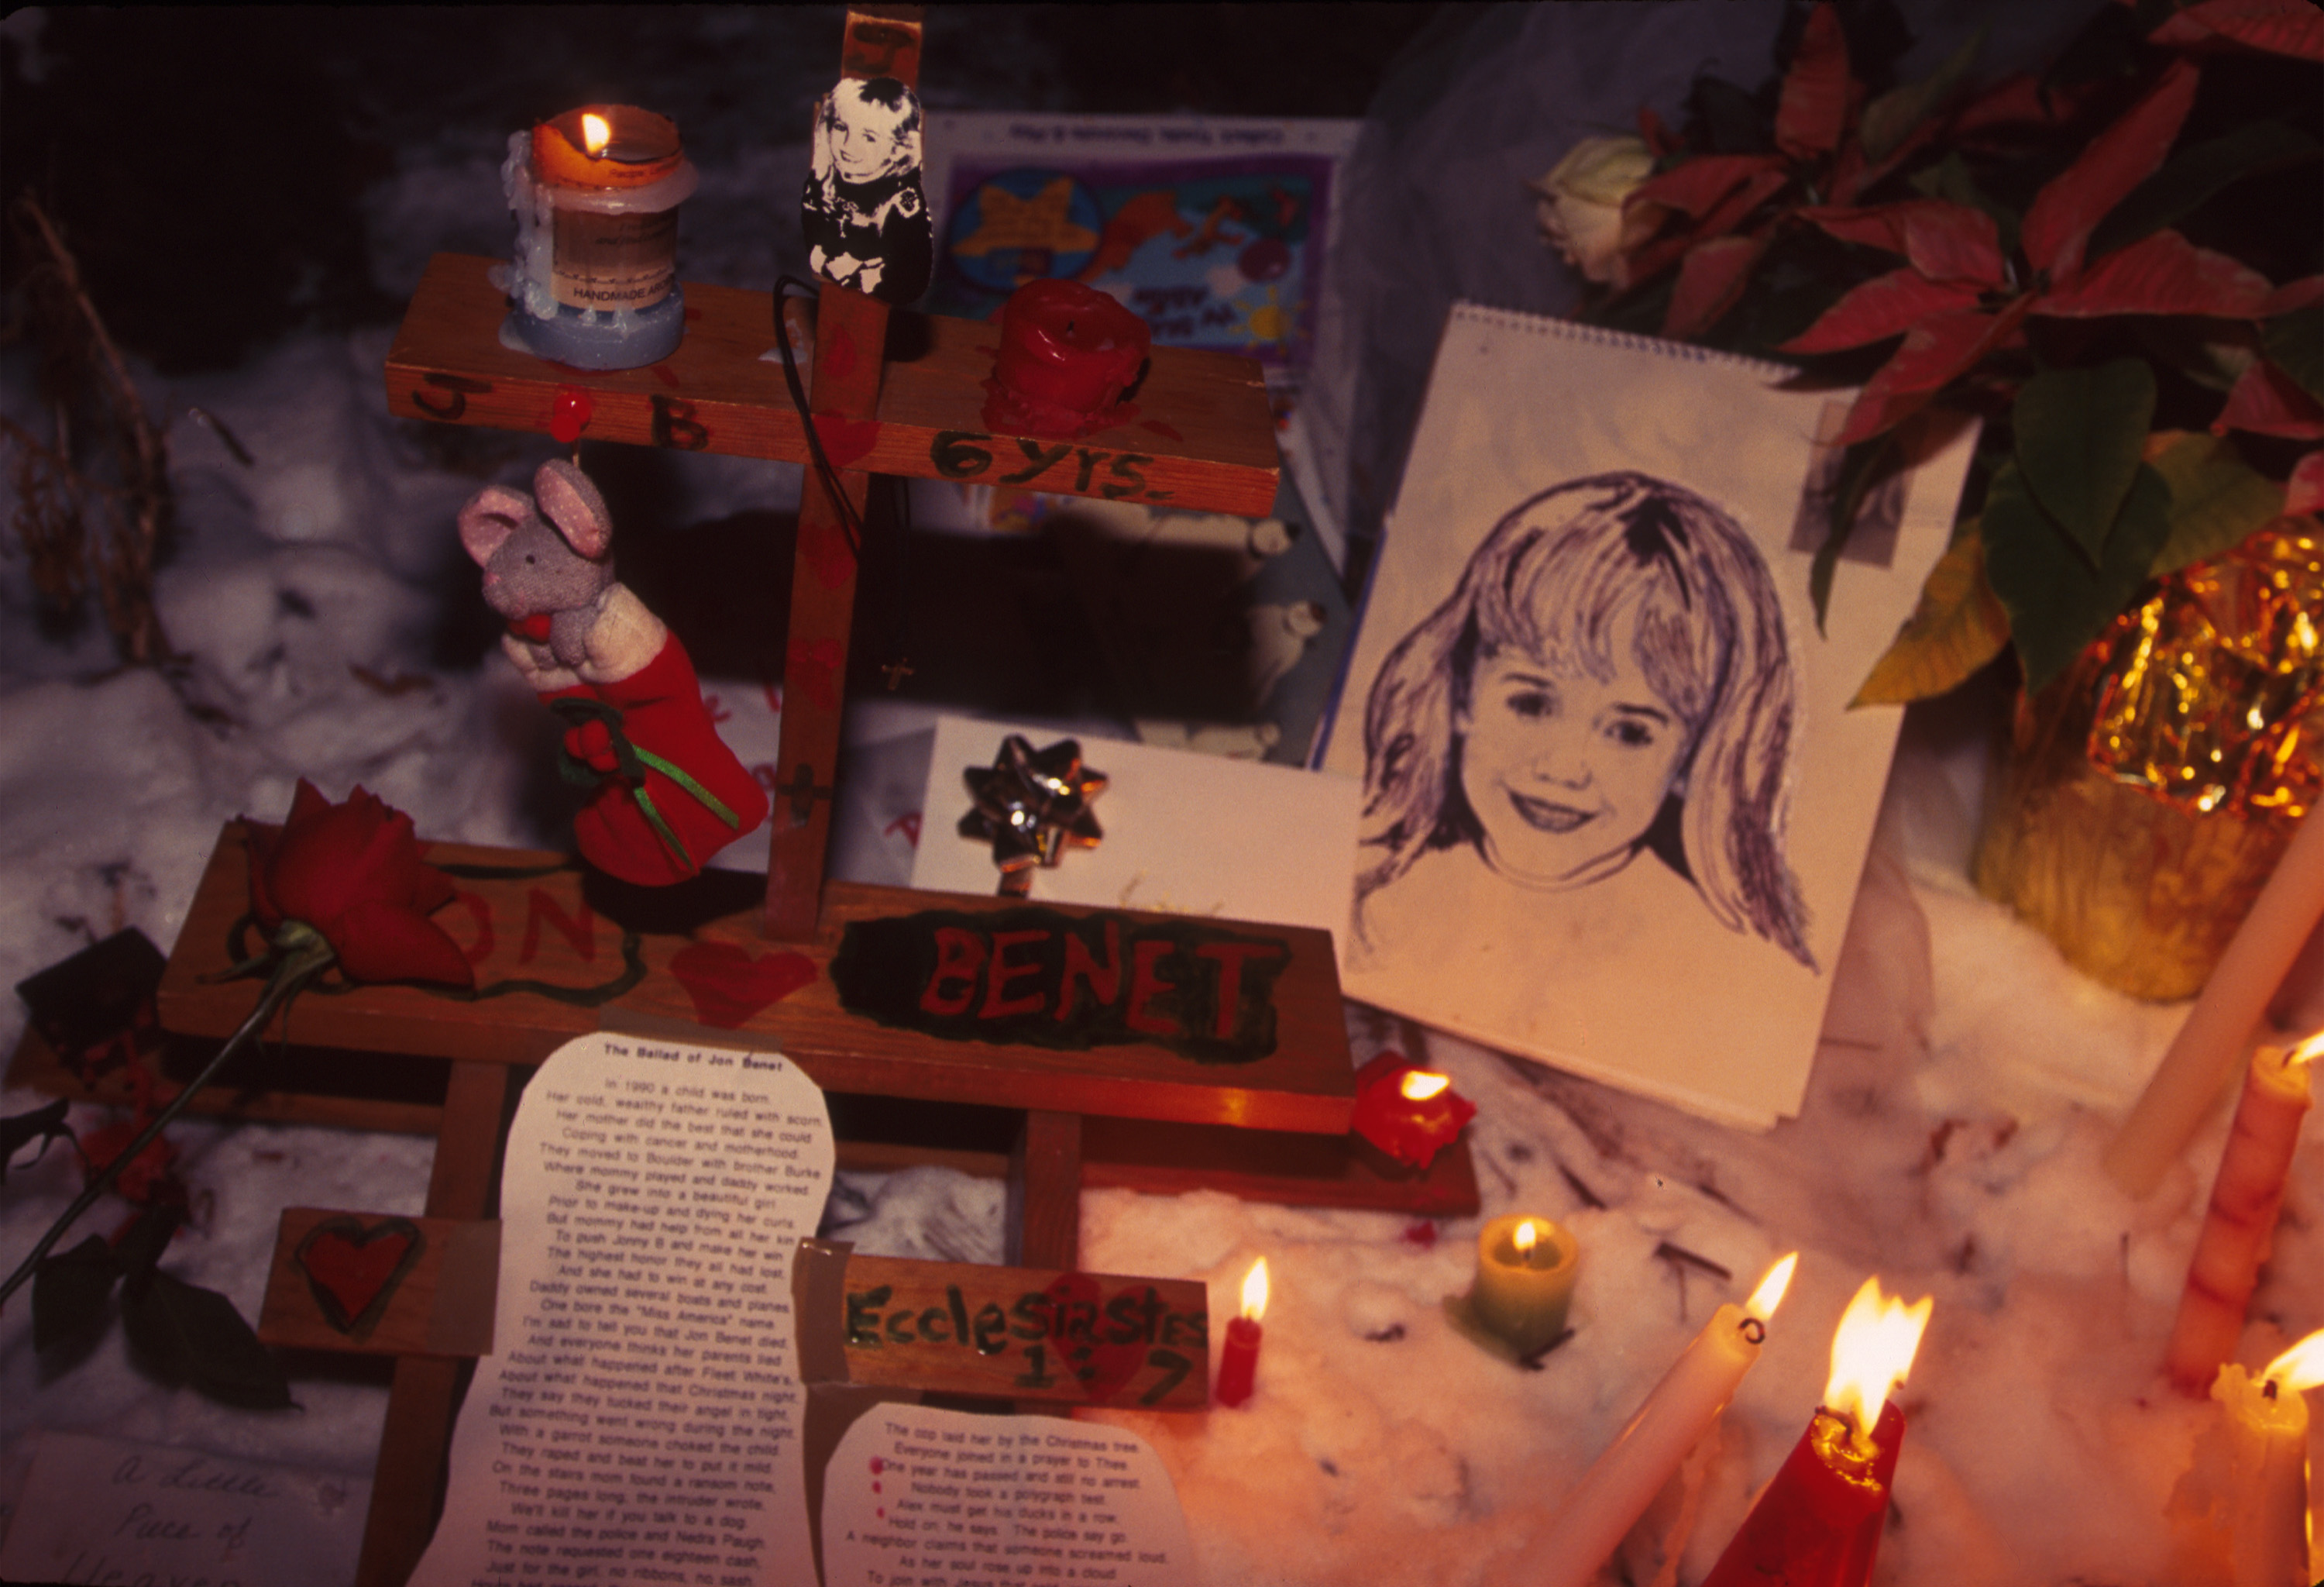 People light candles at the murder site of JonBenet Ramsey in Boulder in December 1997. (credit: Karl Gehring/Liaison)